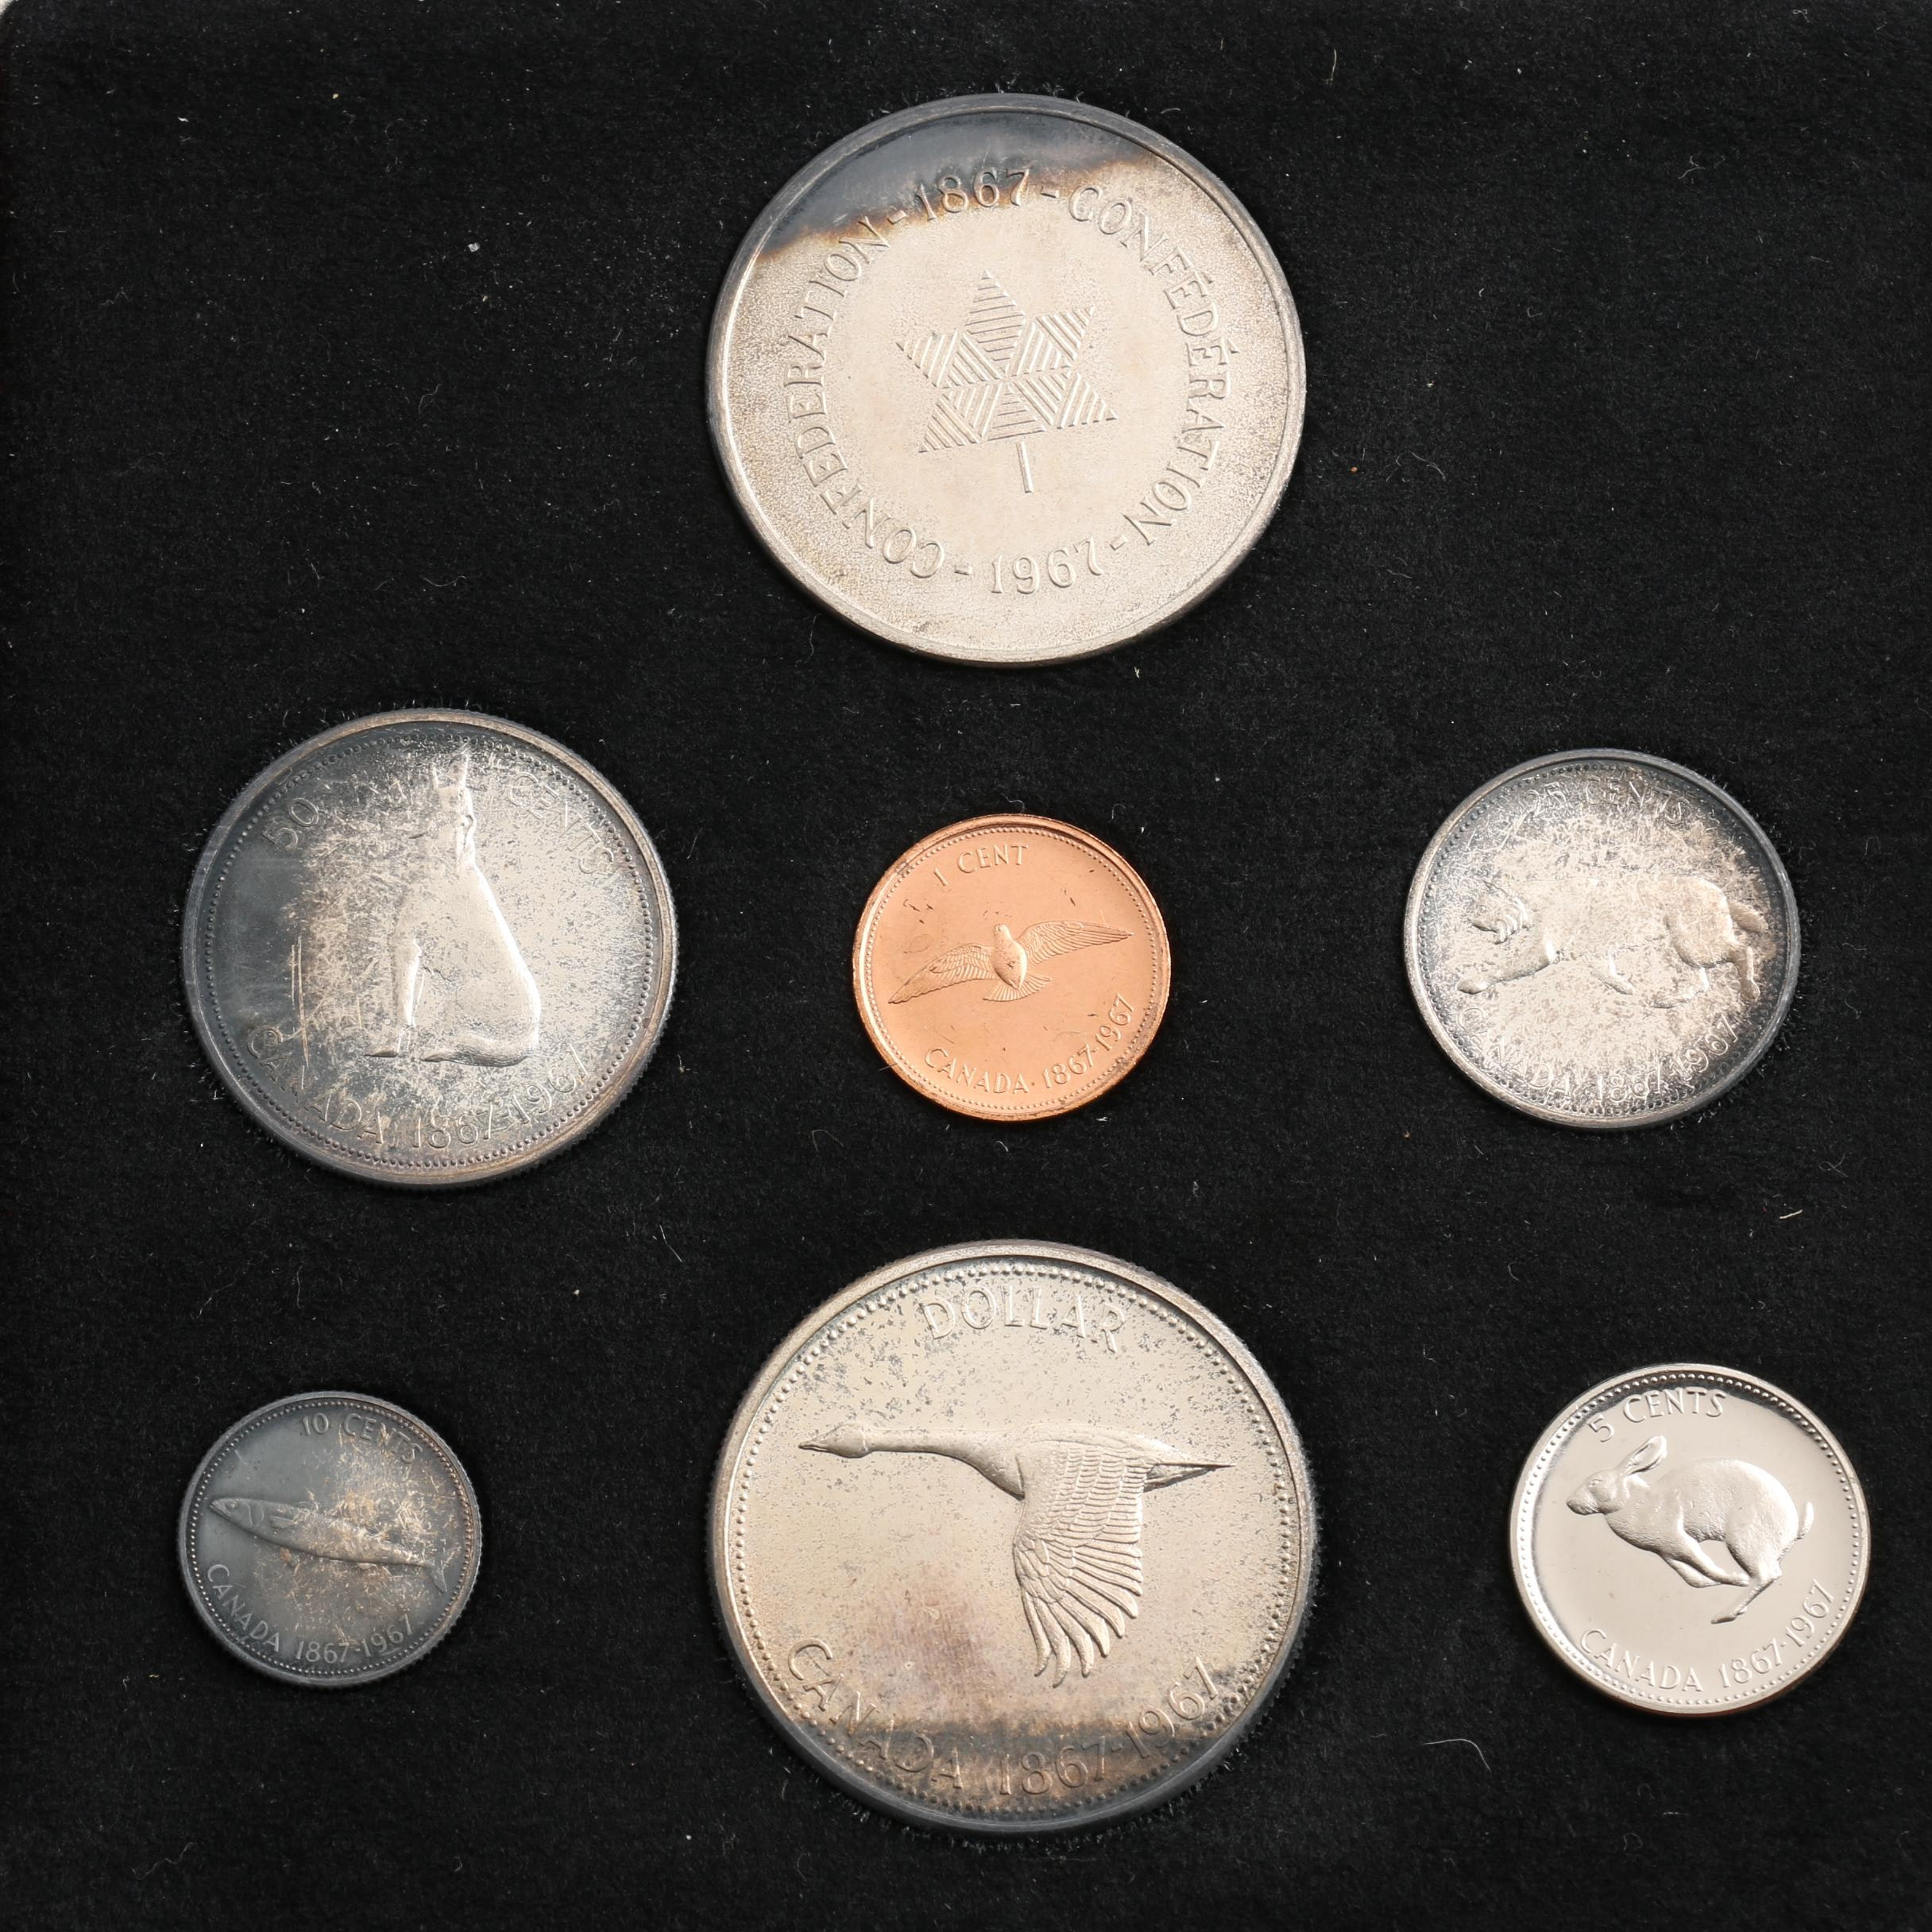 1867-1967 Commemorative Canadian Seven-Coin Mint Set with 1967 Silver Medal